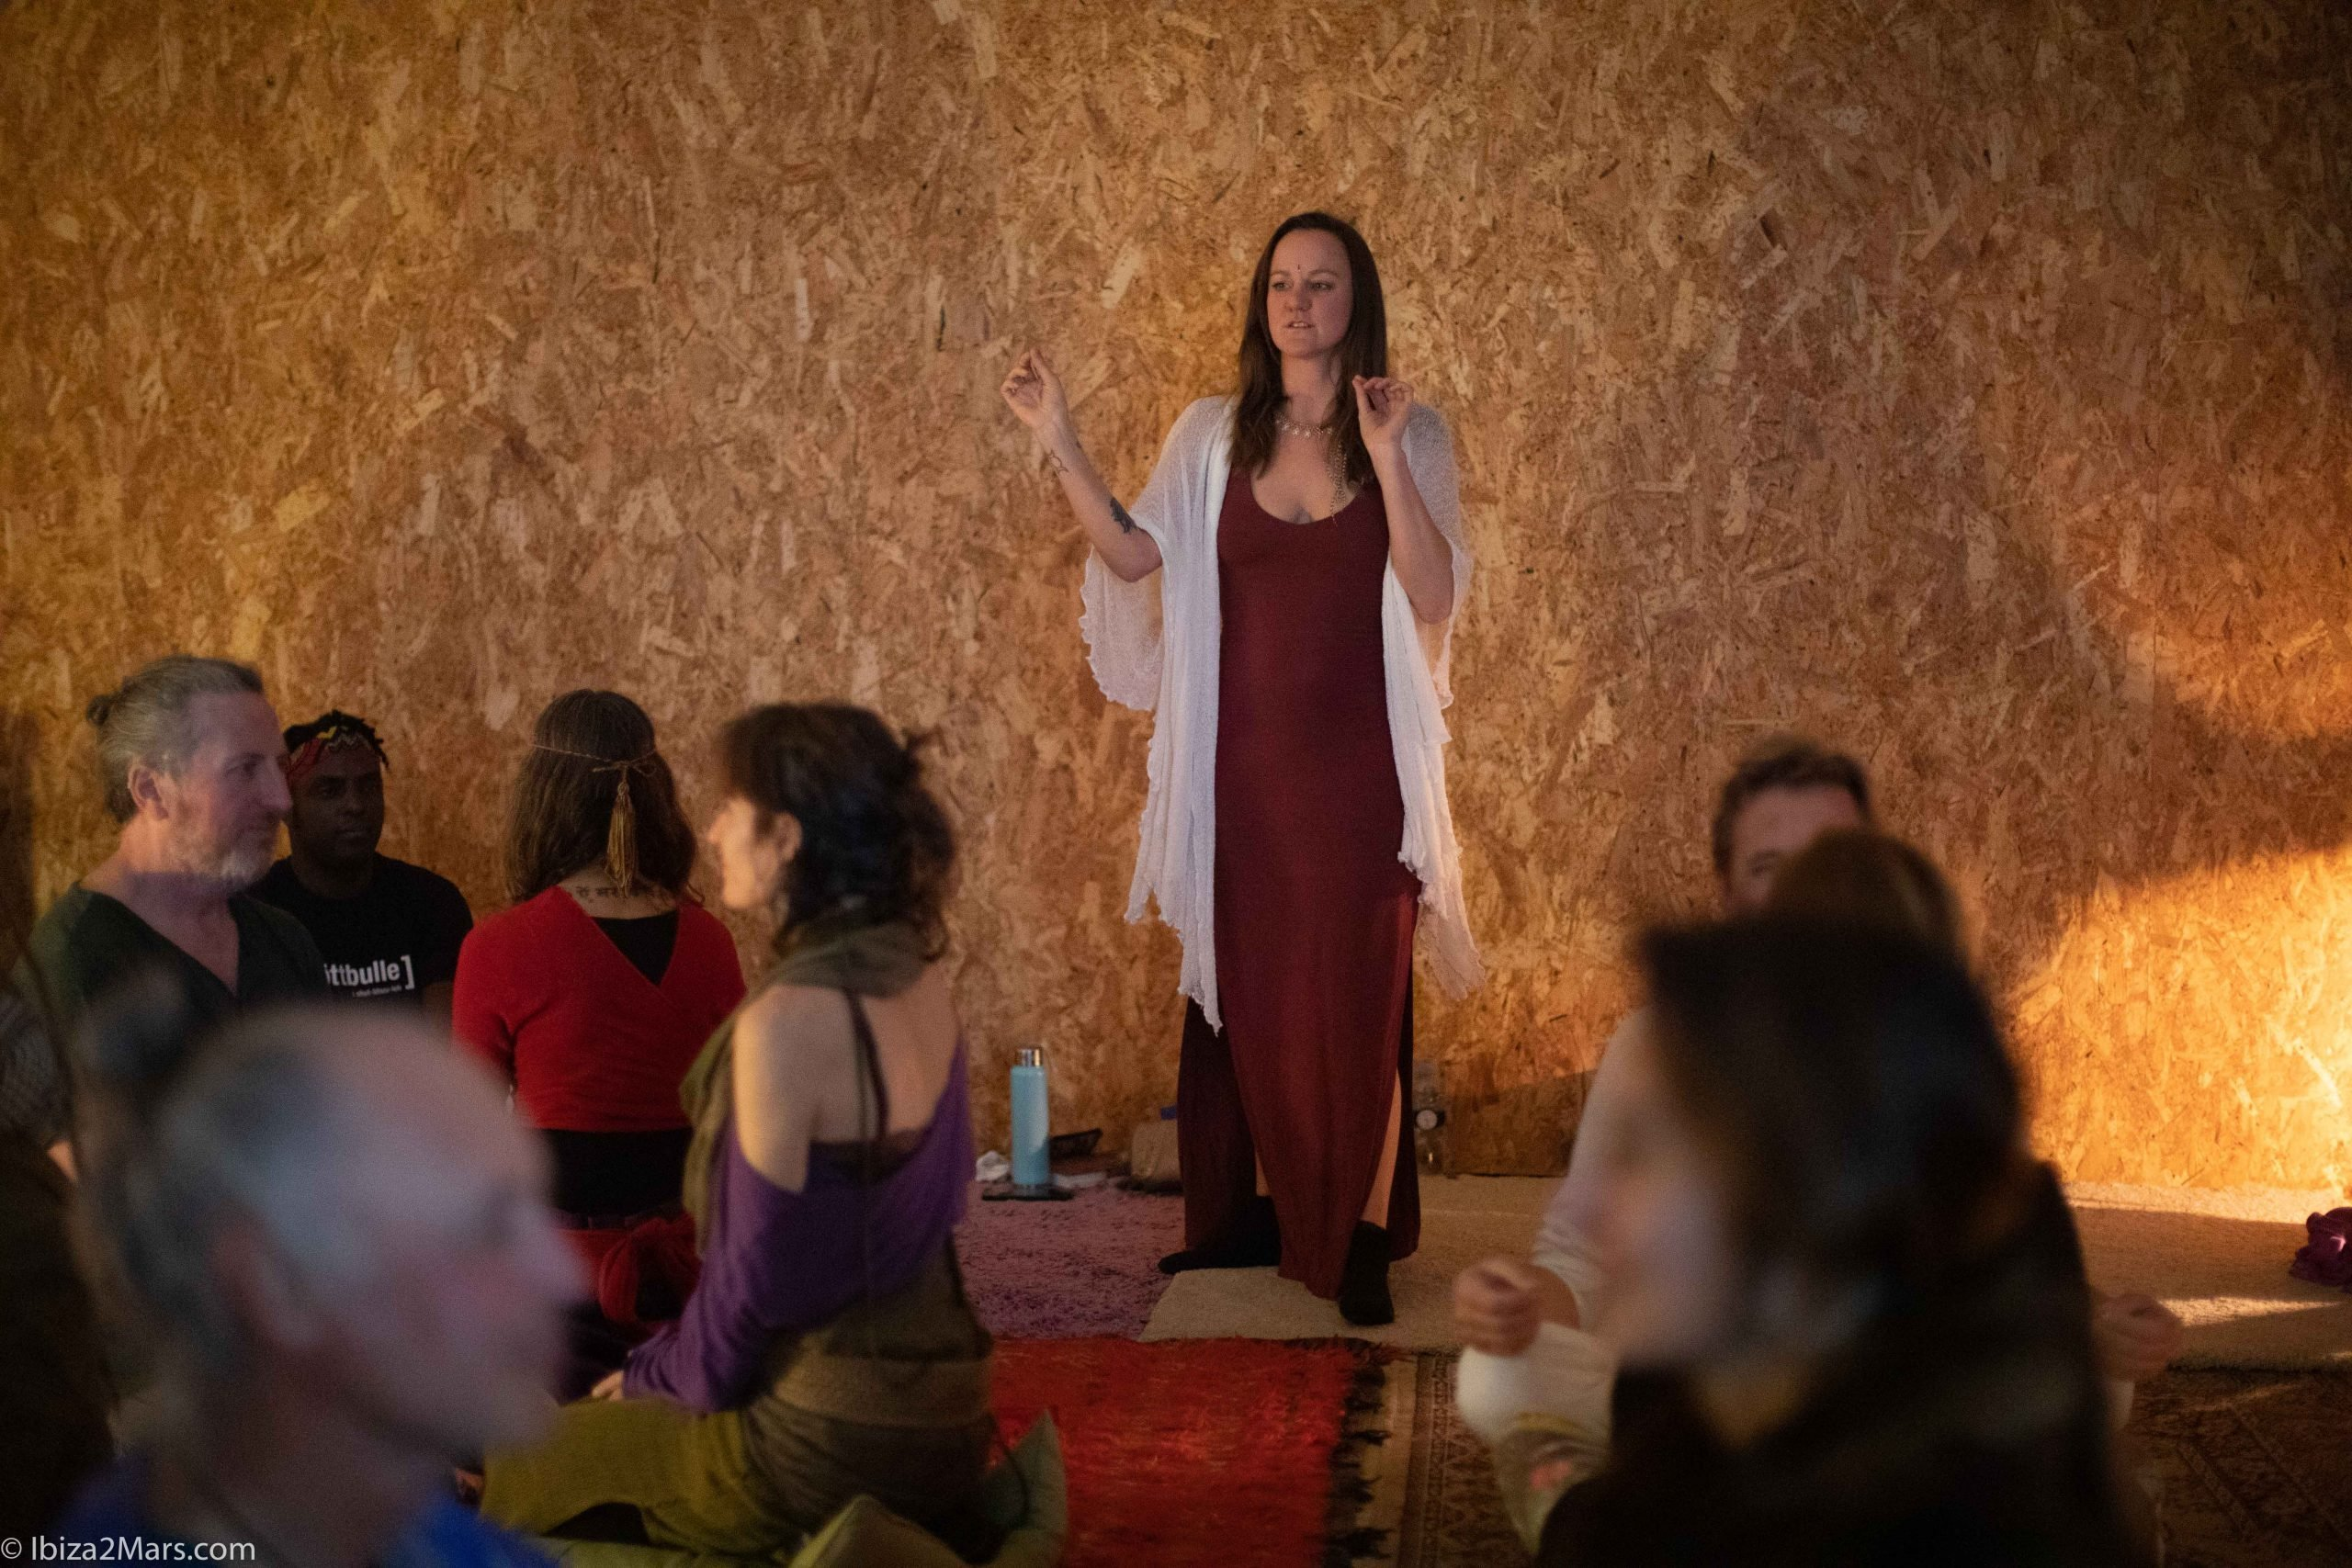 transformational events - tantra ceremony